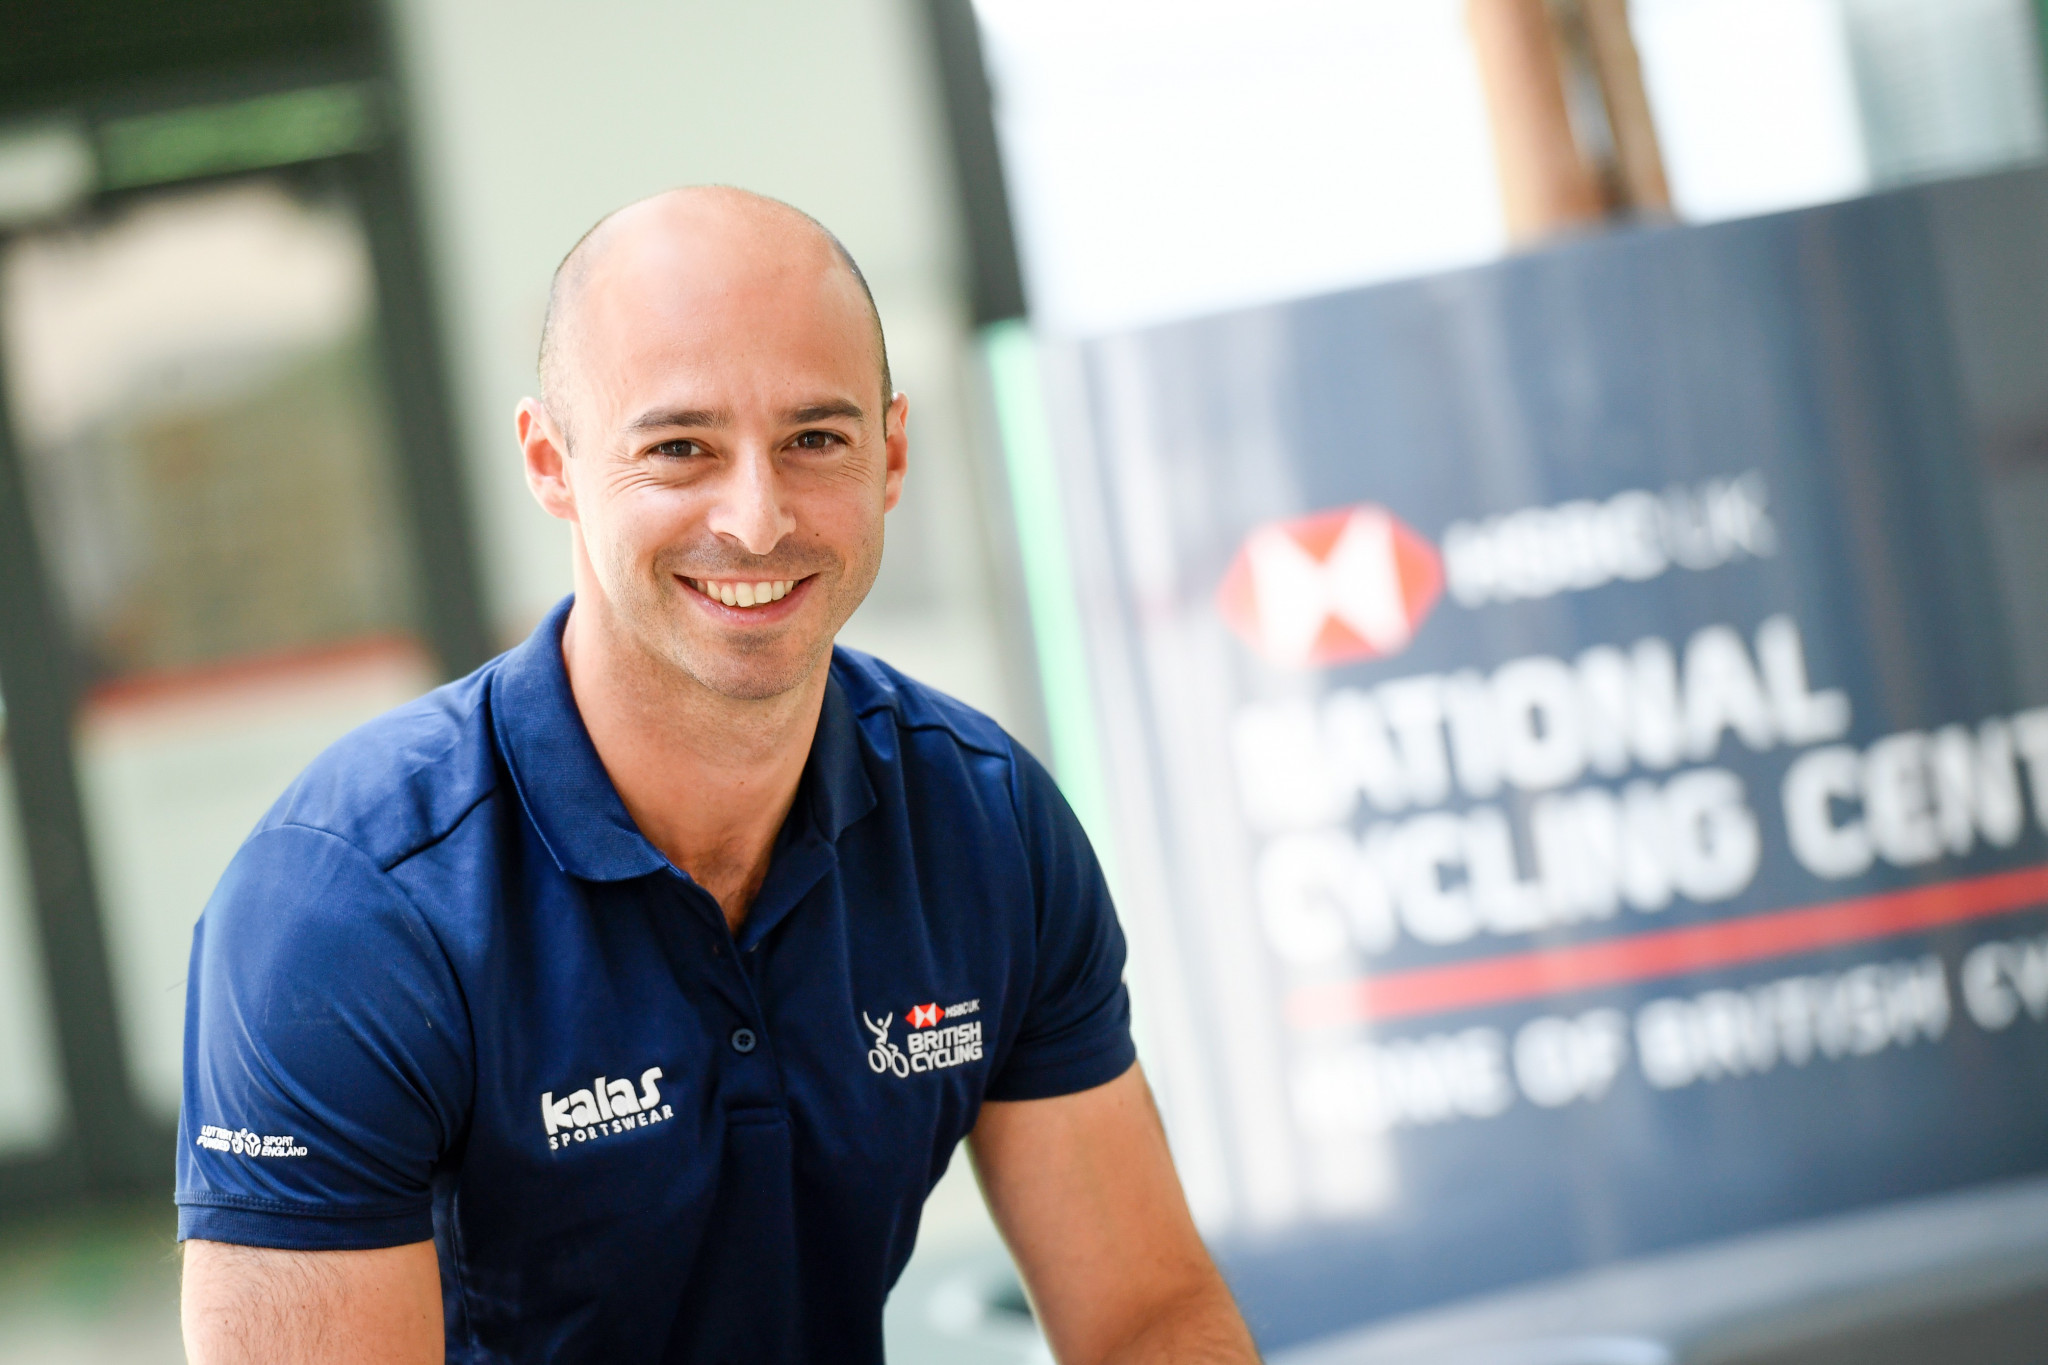 British Cycling appoints new commercial director with focus on sustainability